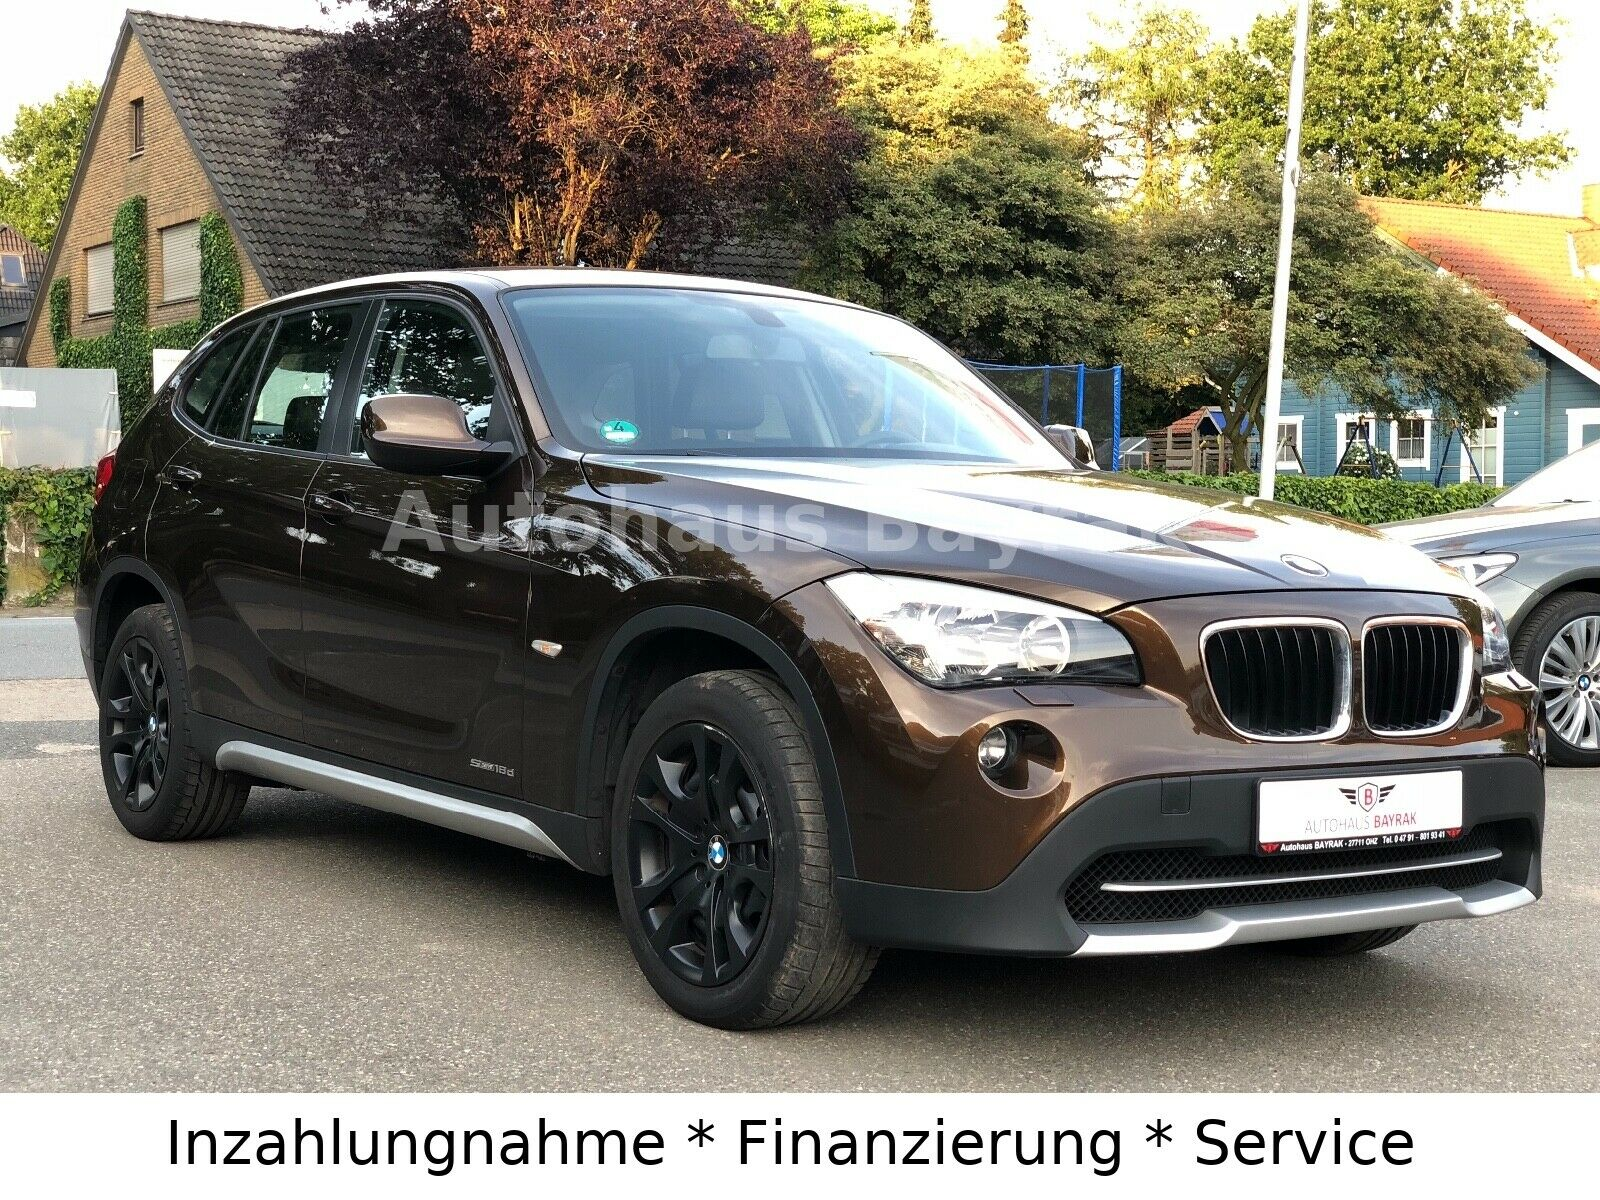 BMW X1 sDrive 18d PDC/AHK/BORDCOMPUTER/START-STOPP